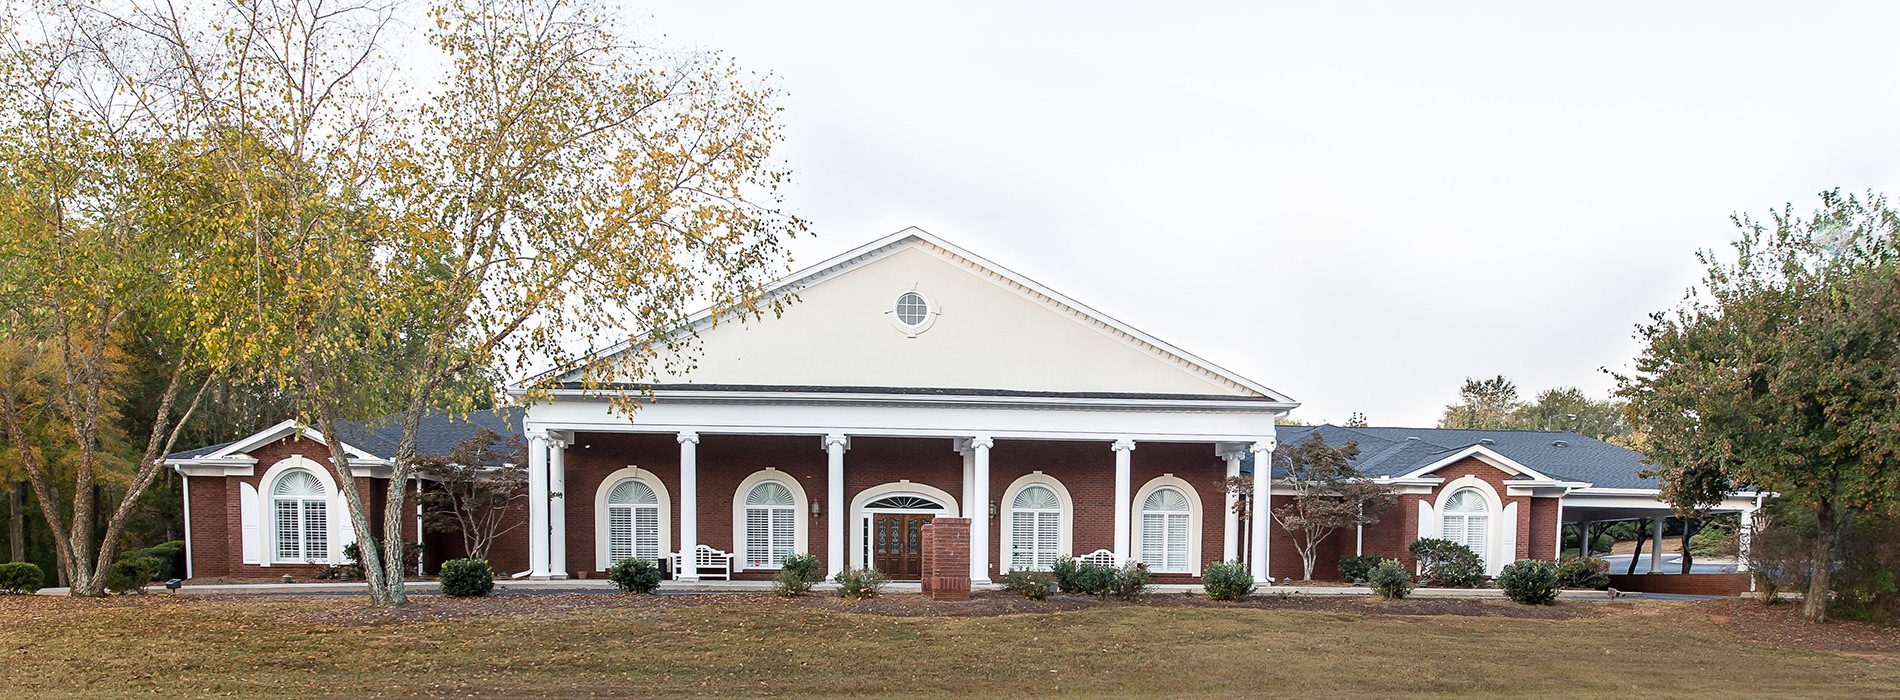 Carl J. Mowell & Son Funeral Homes | Fayetteville & Peachtree City, GA